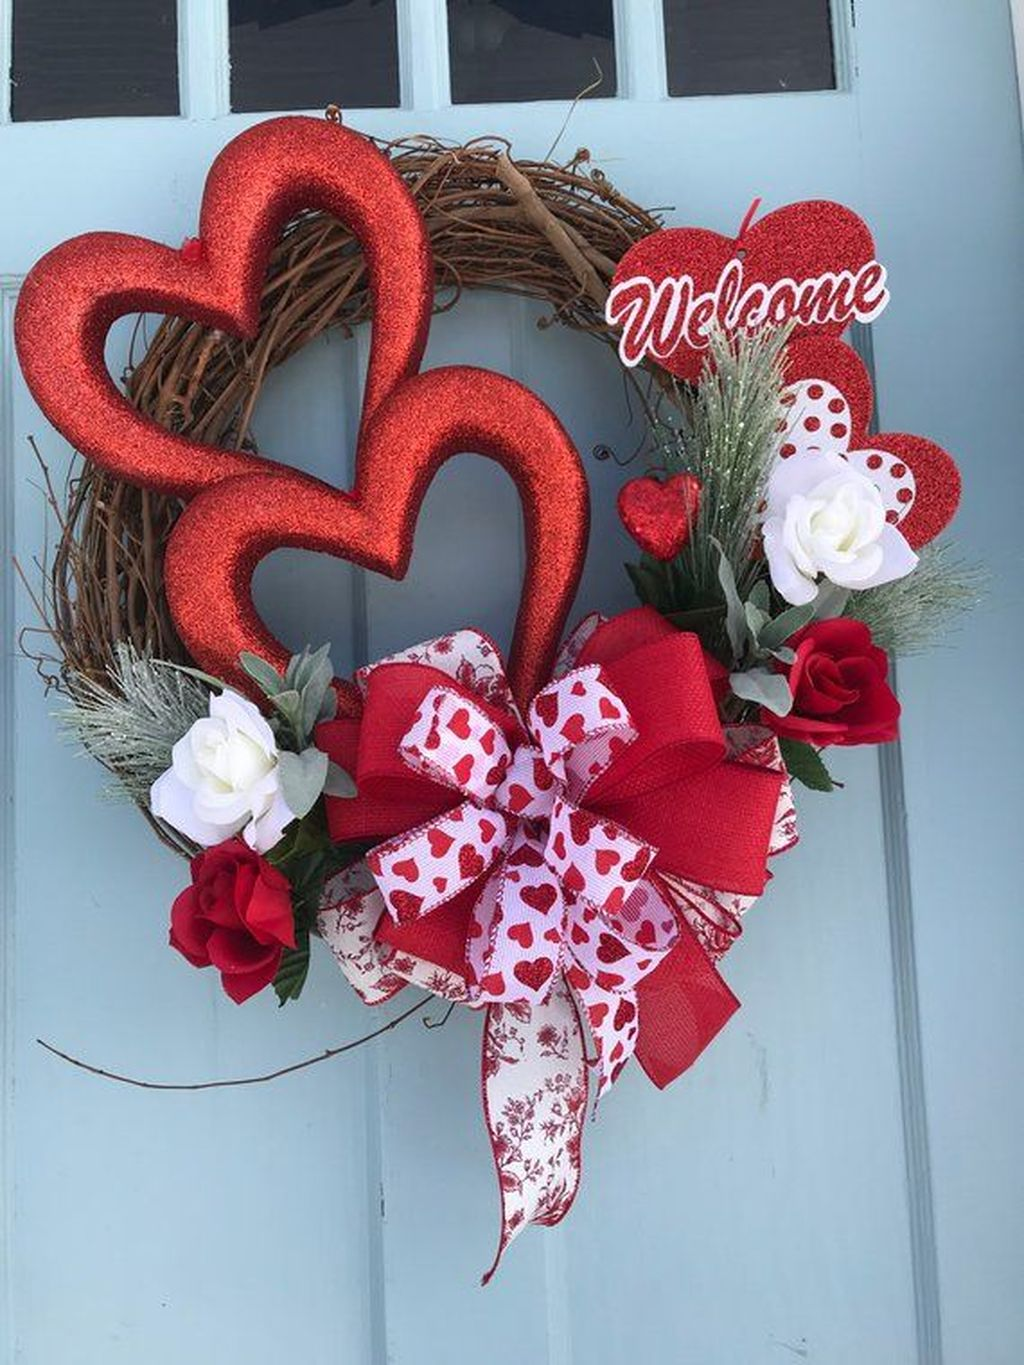 Fabulous Valentine Wreath Design Ideas FOr Your Front Door Decor 34